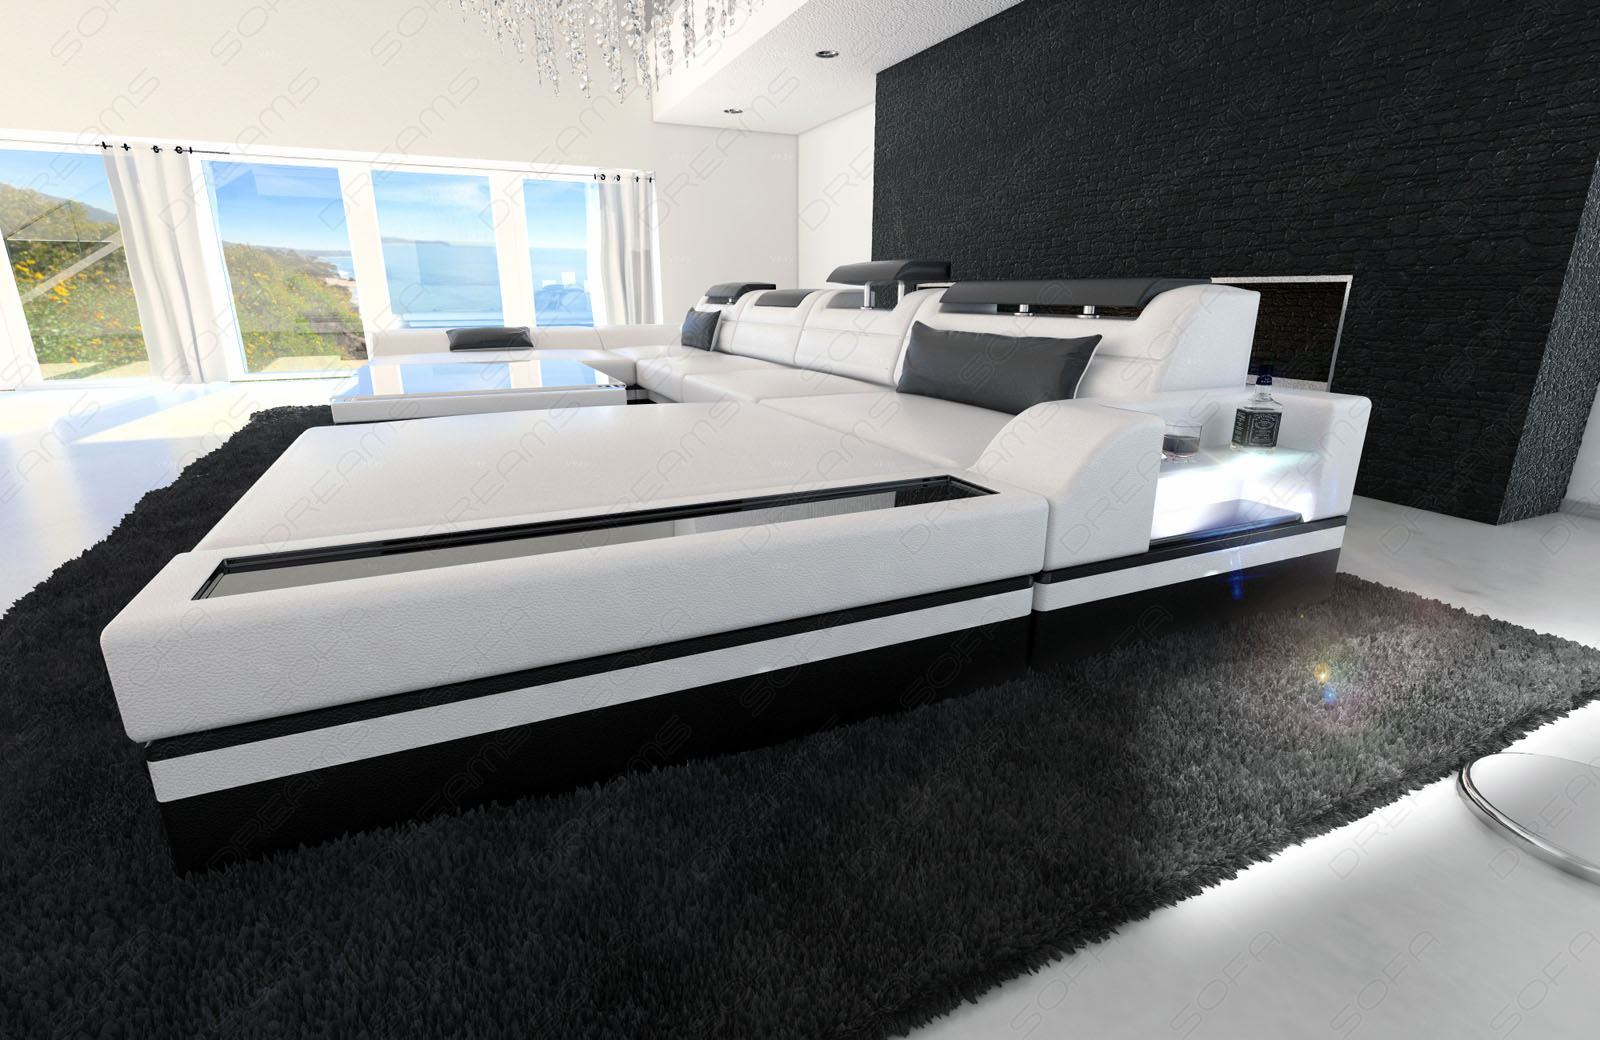 xxl leather sectional sofa monza u shaped cornersofa with led lights. Black Bedroom Furniture Sets. Home Design Ideas